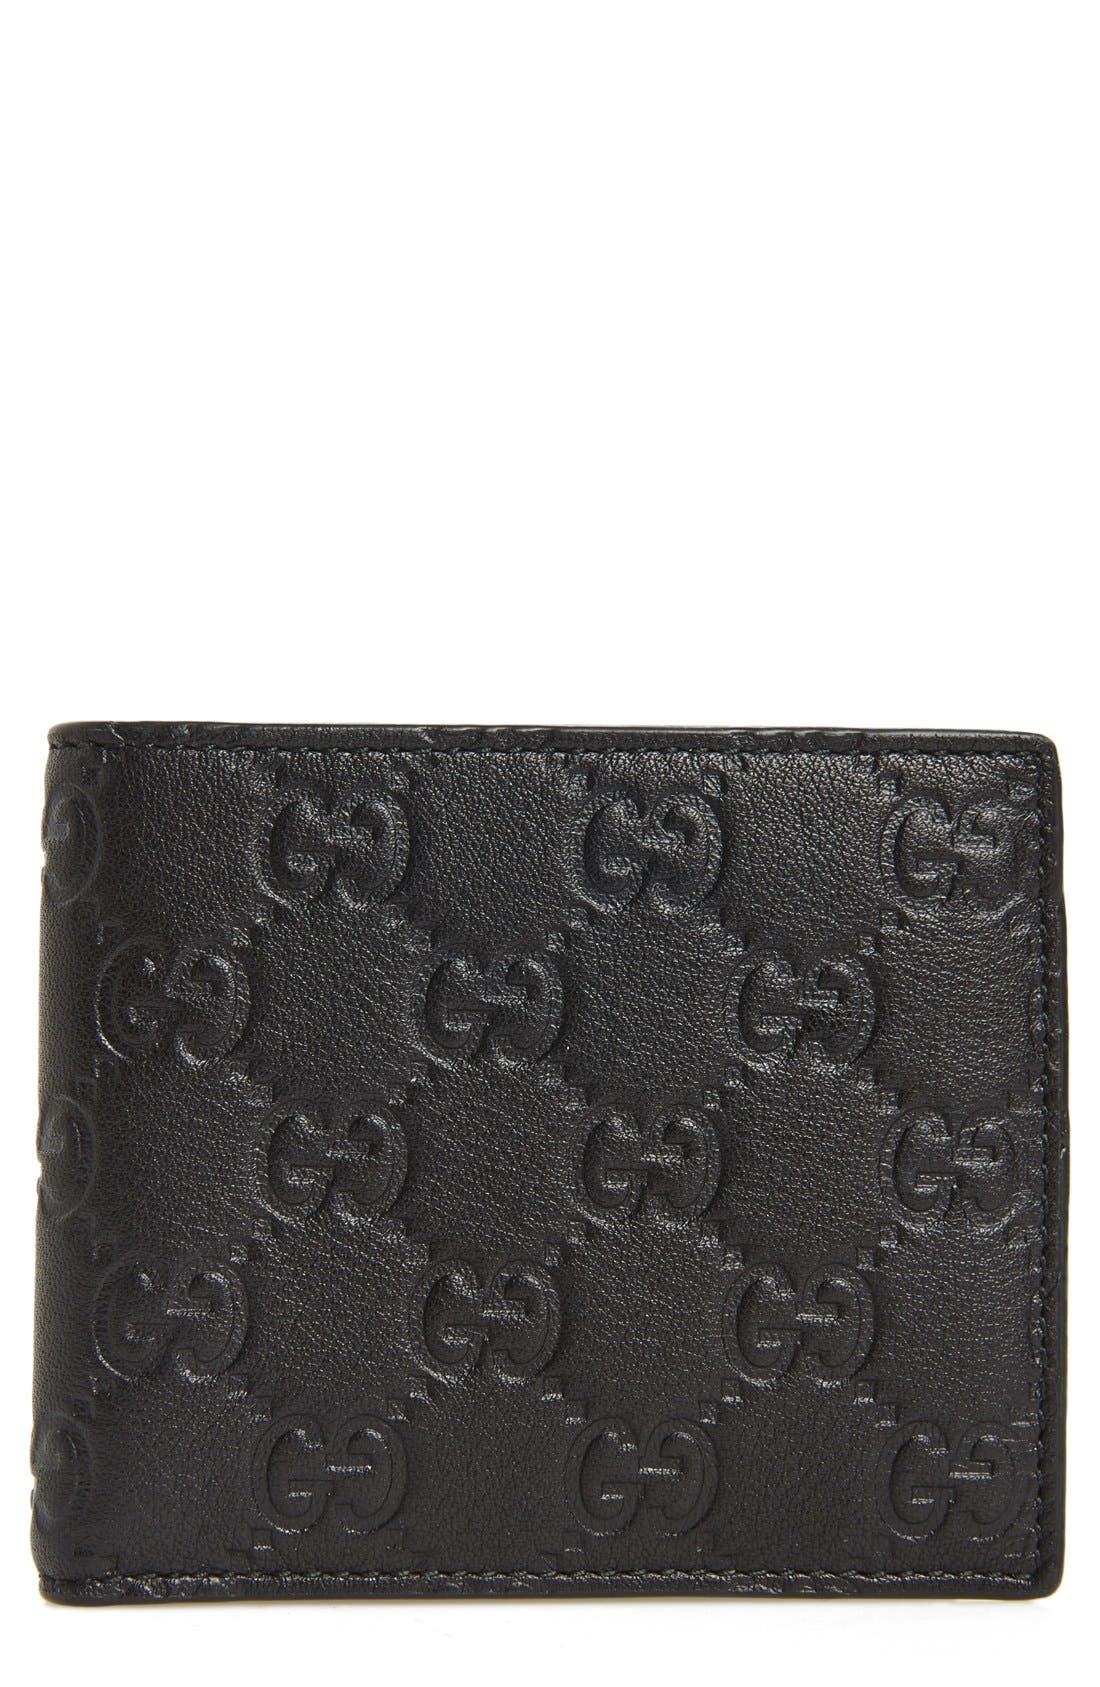 Logo Embossed Calfskin Leather Wallet,                             Main thumbnail 1, color,                             002